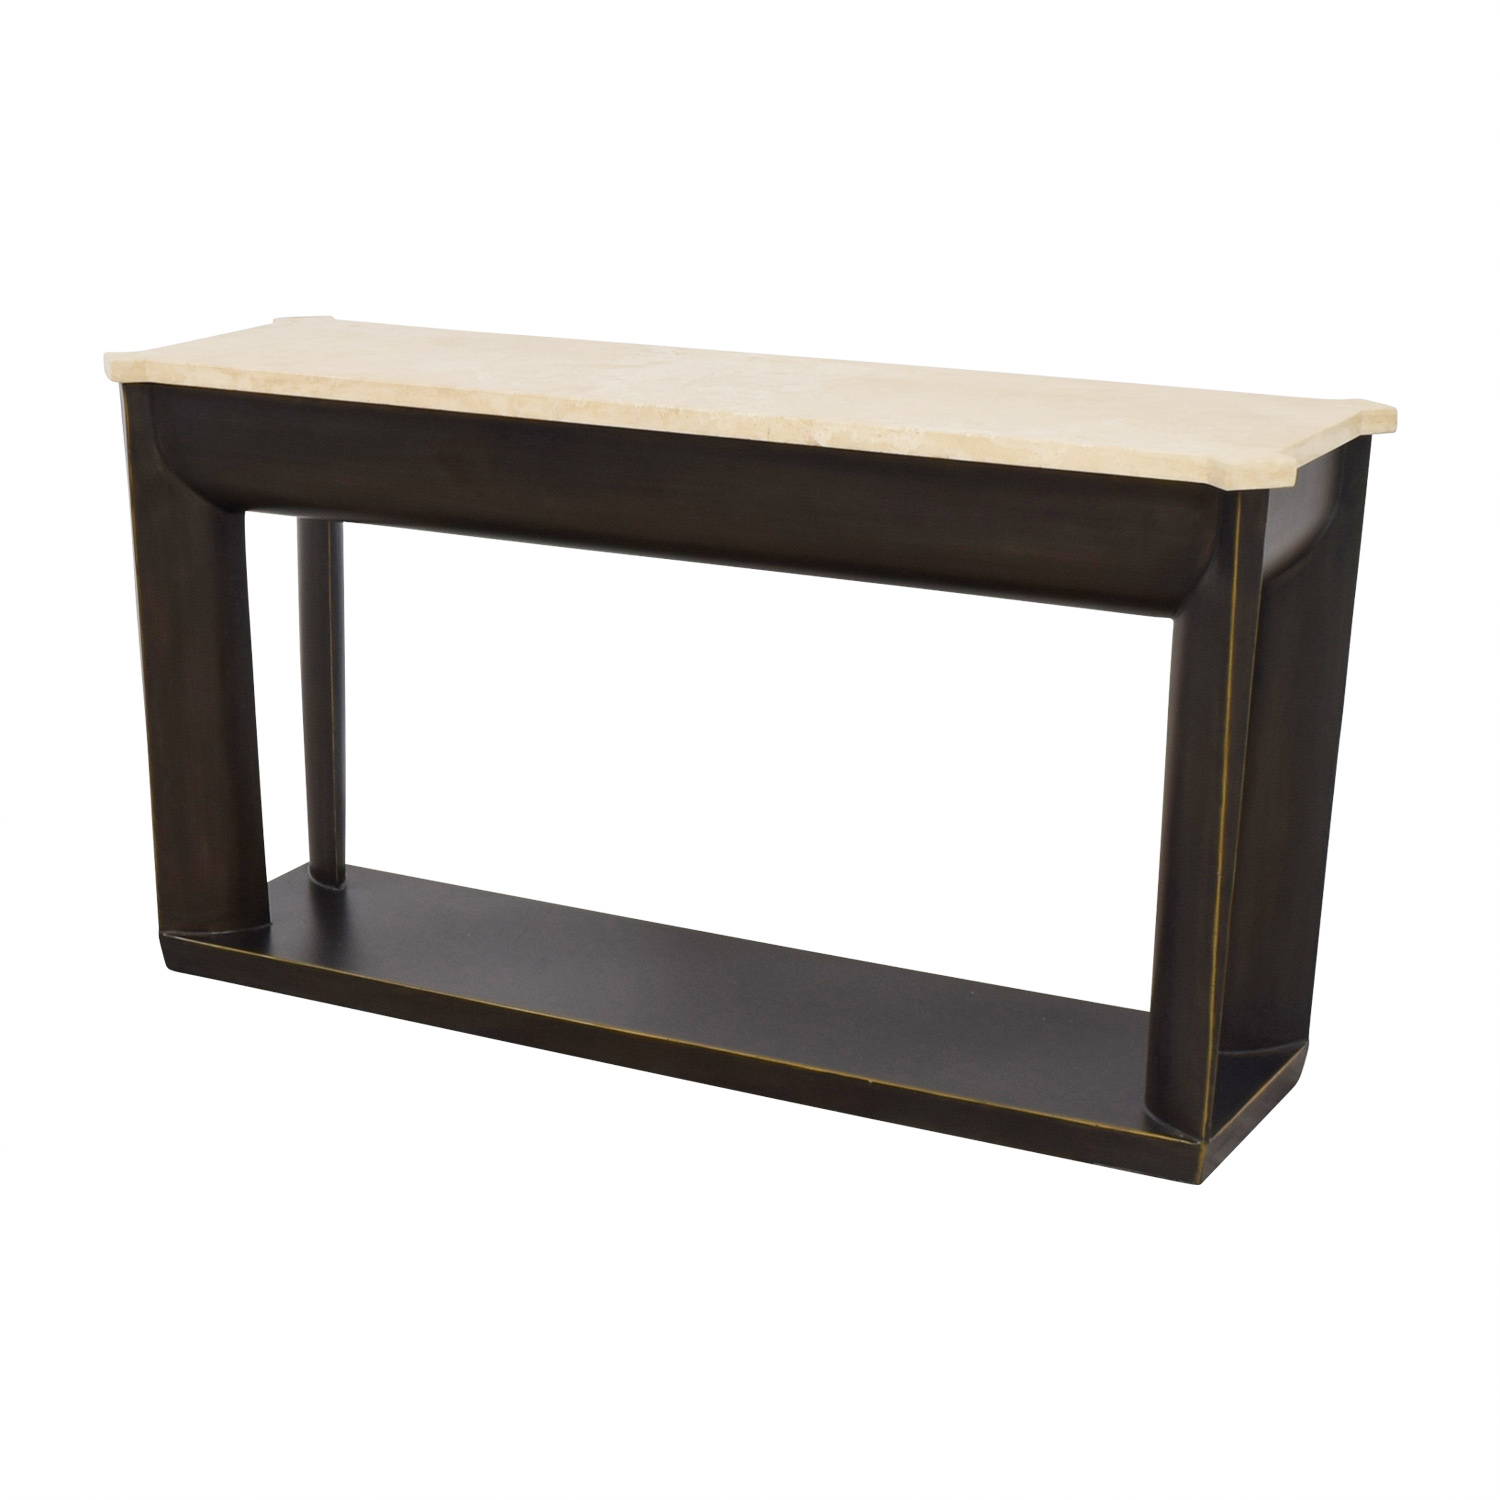 Superieur ... Shop Kriess Marble And Metal Foyer Table Kriess ...